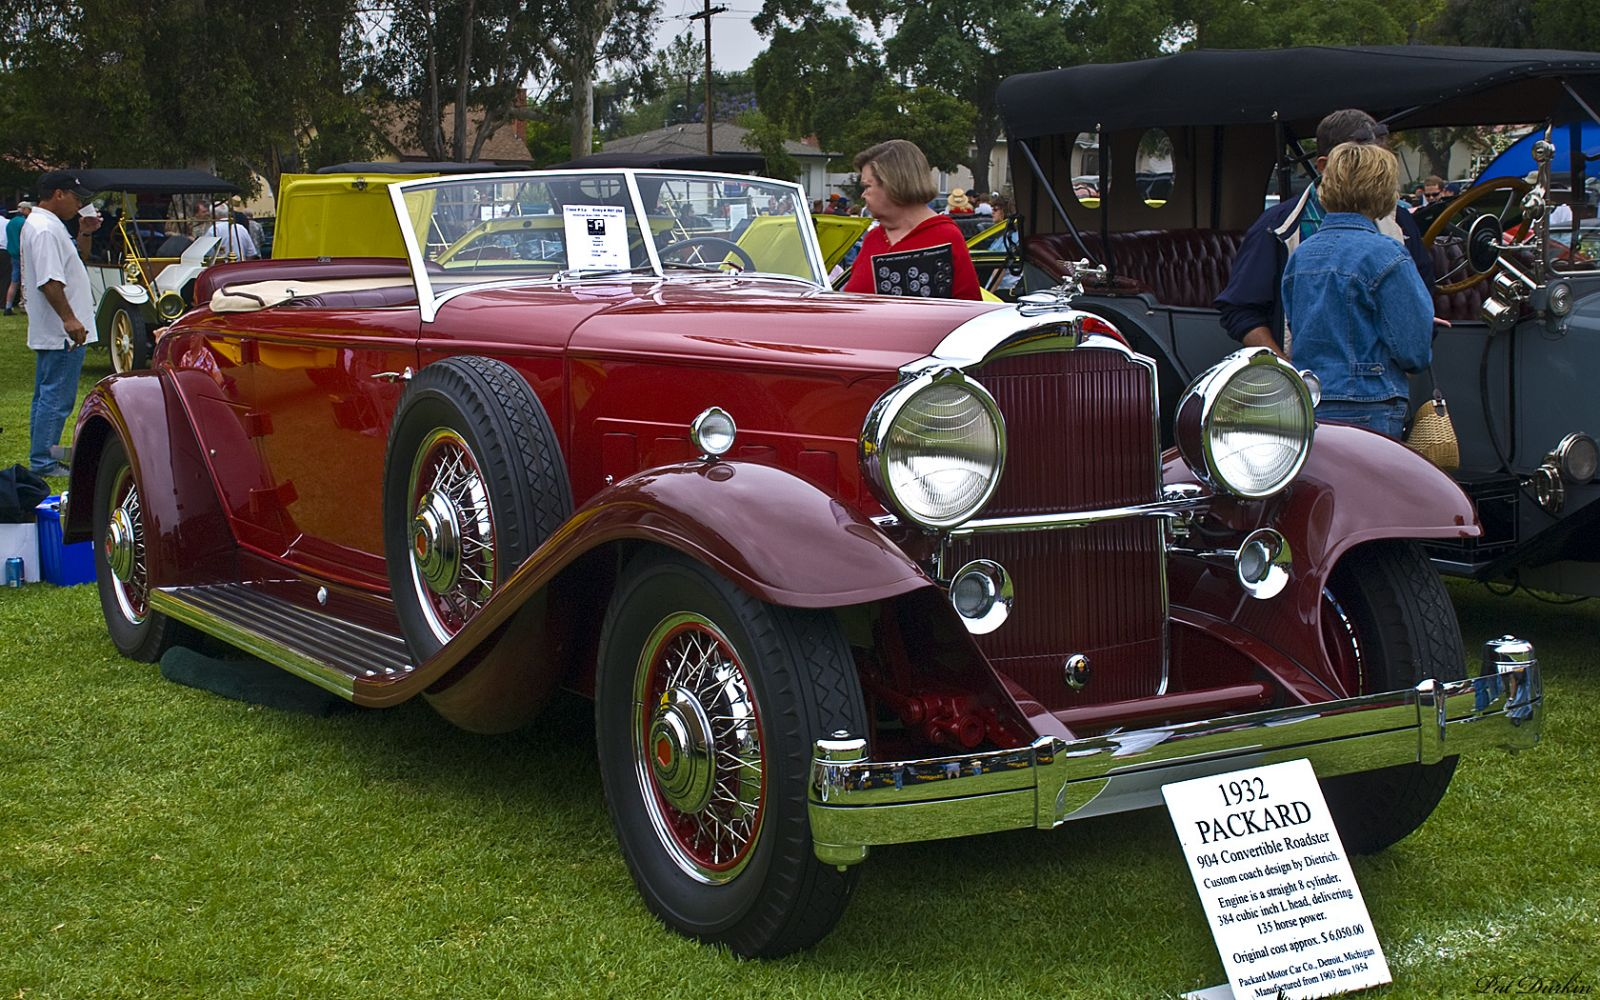 1932 Packard 904 Convertible Roadster - red - fvr 2